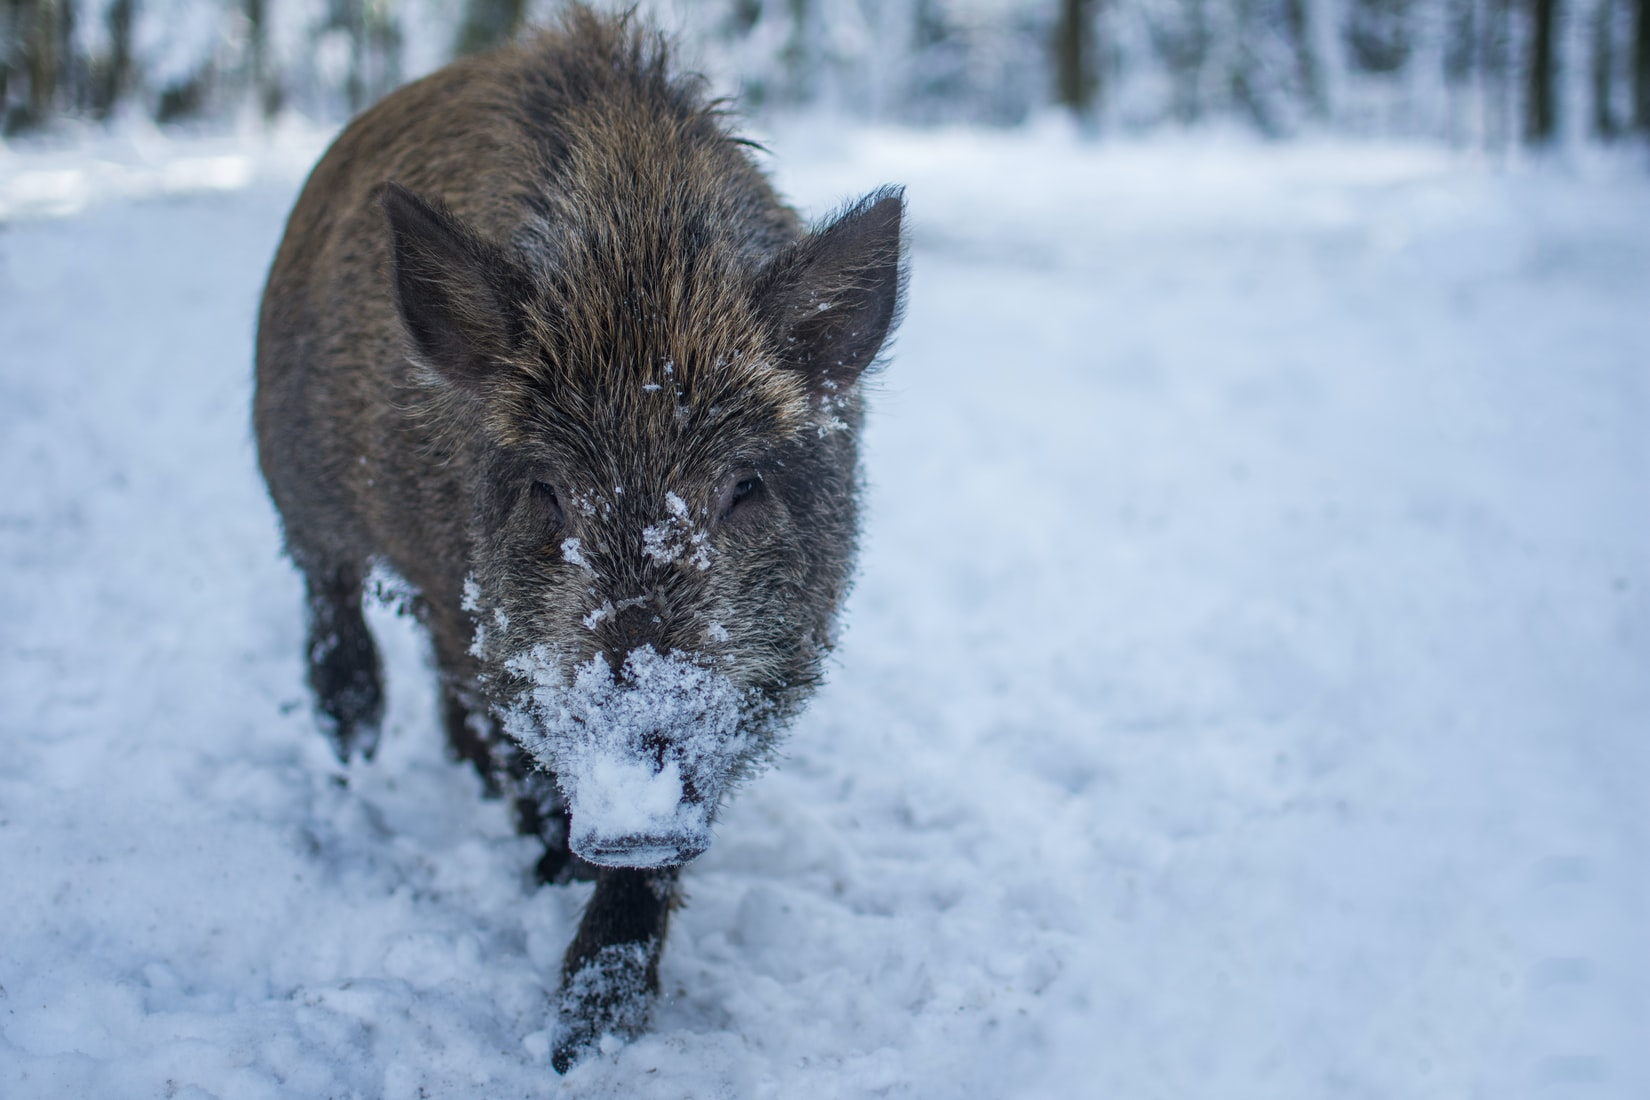 Huge Feral Hogs Invading Canada, Building 'Pigloos' As They Go